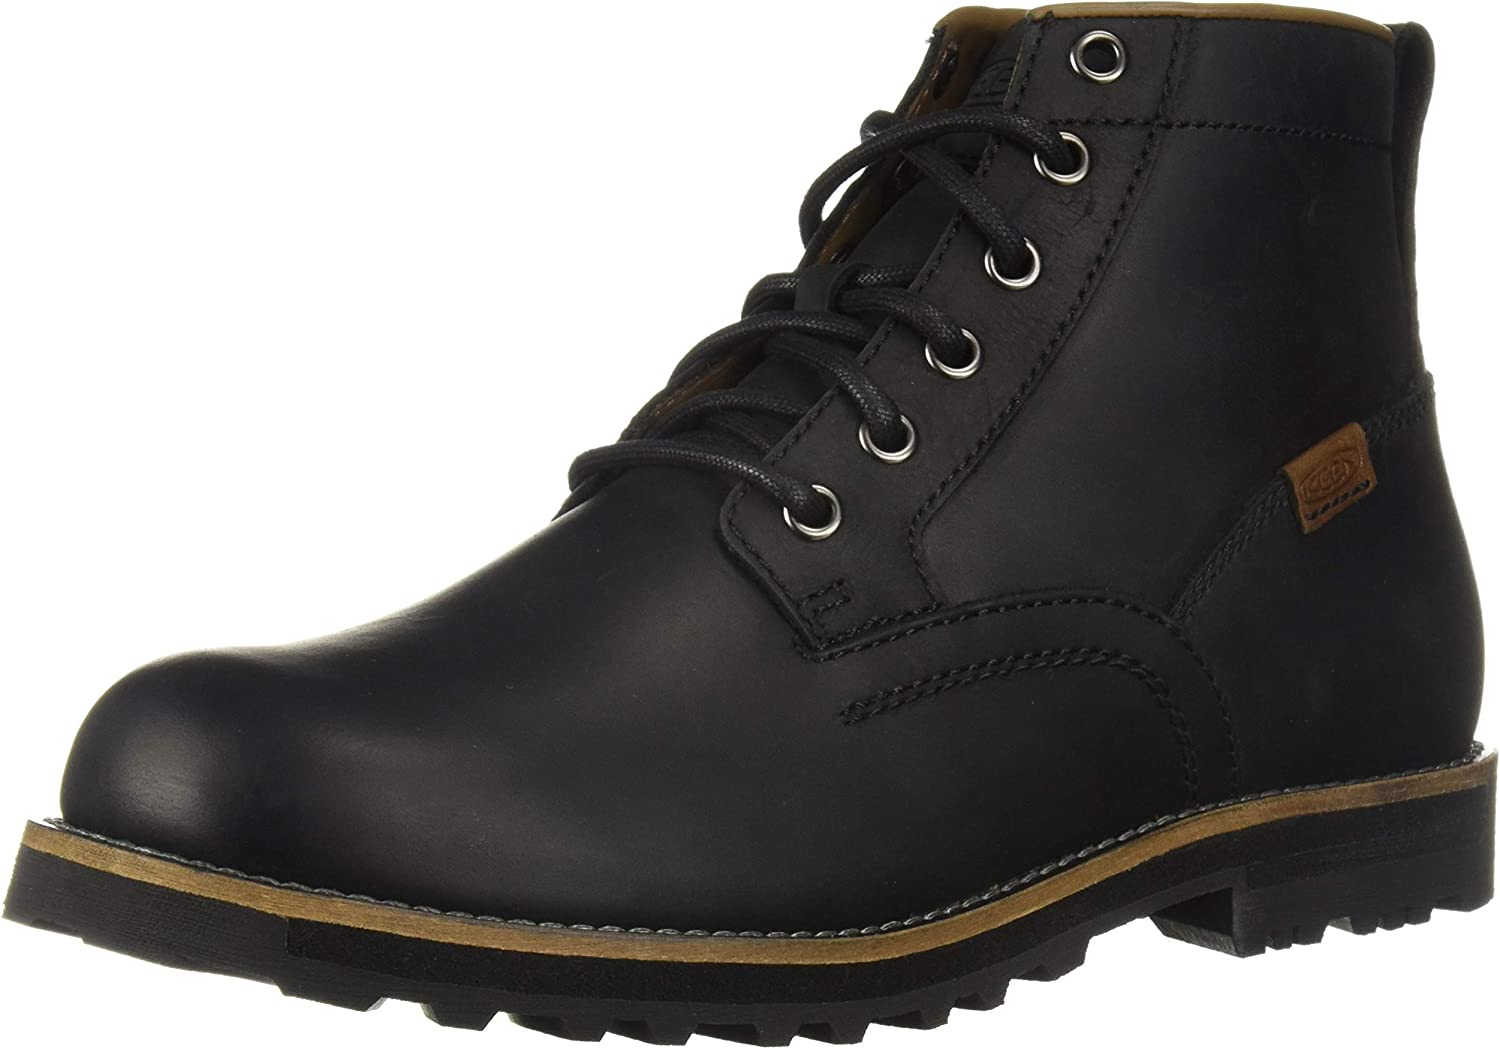 Keen Men's The 59 Fashion Boot